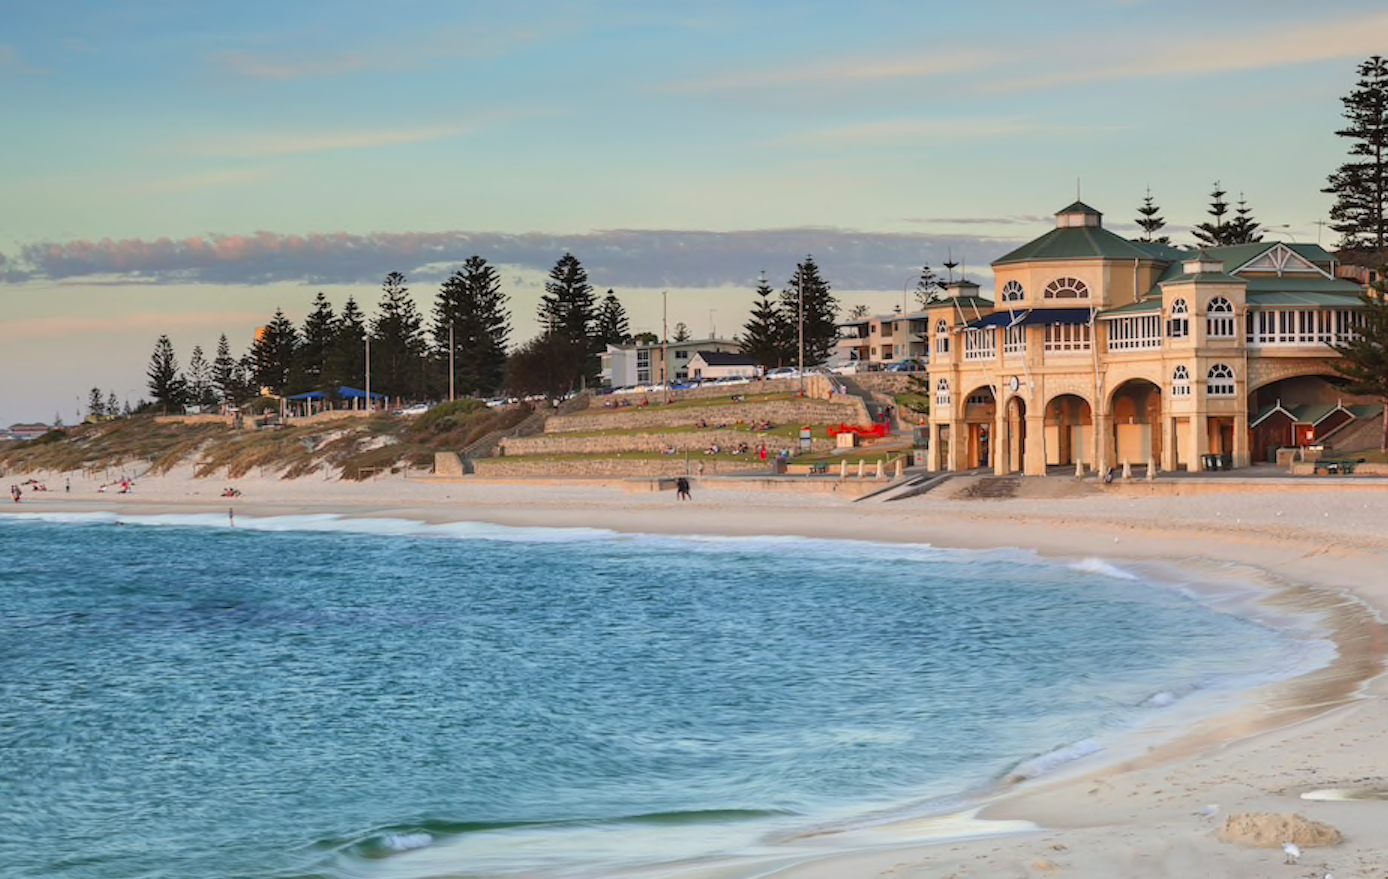 Perth's Cottlesloe Beach Is One Of Perth's Best Beaches With White Sand, Blue Ocean and A Large Old Surf Club.